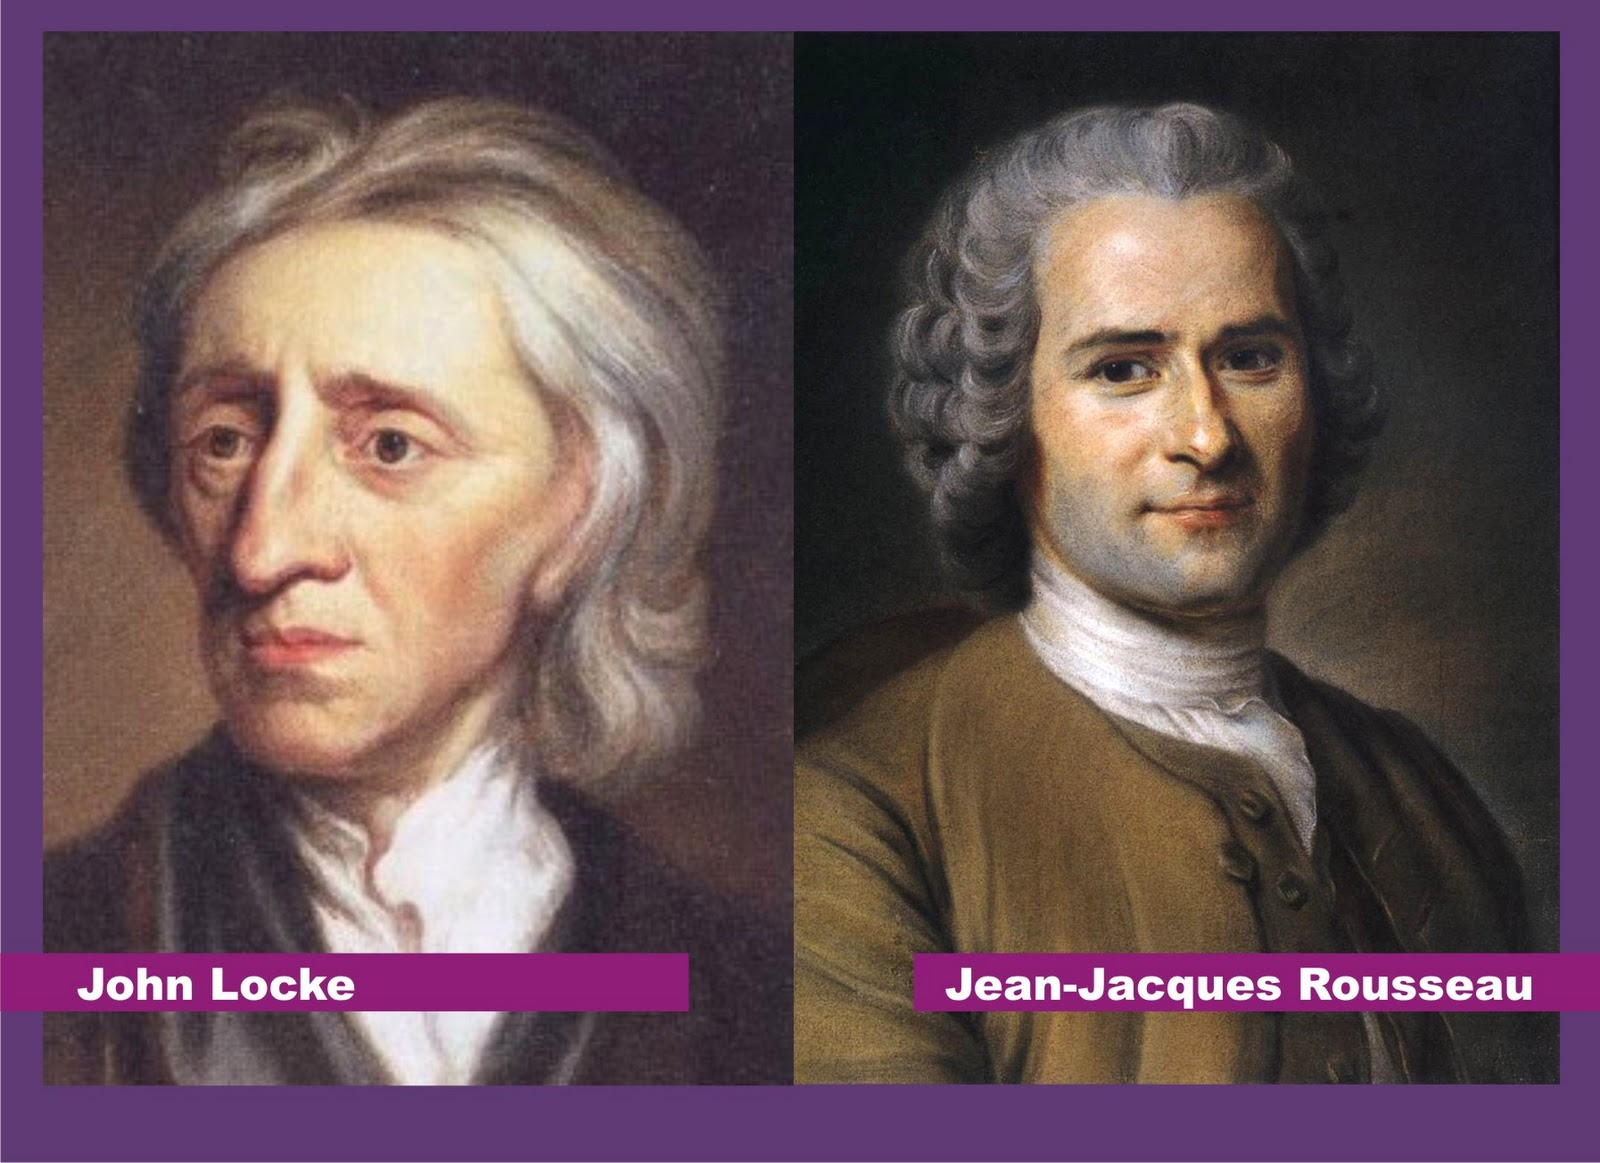 locke vs rousseau essay Home » essay » rousseau  essays, papers: in current category  title: rousseau  essay details subject: biographies: author  locke vs rousseau.